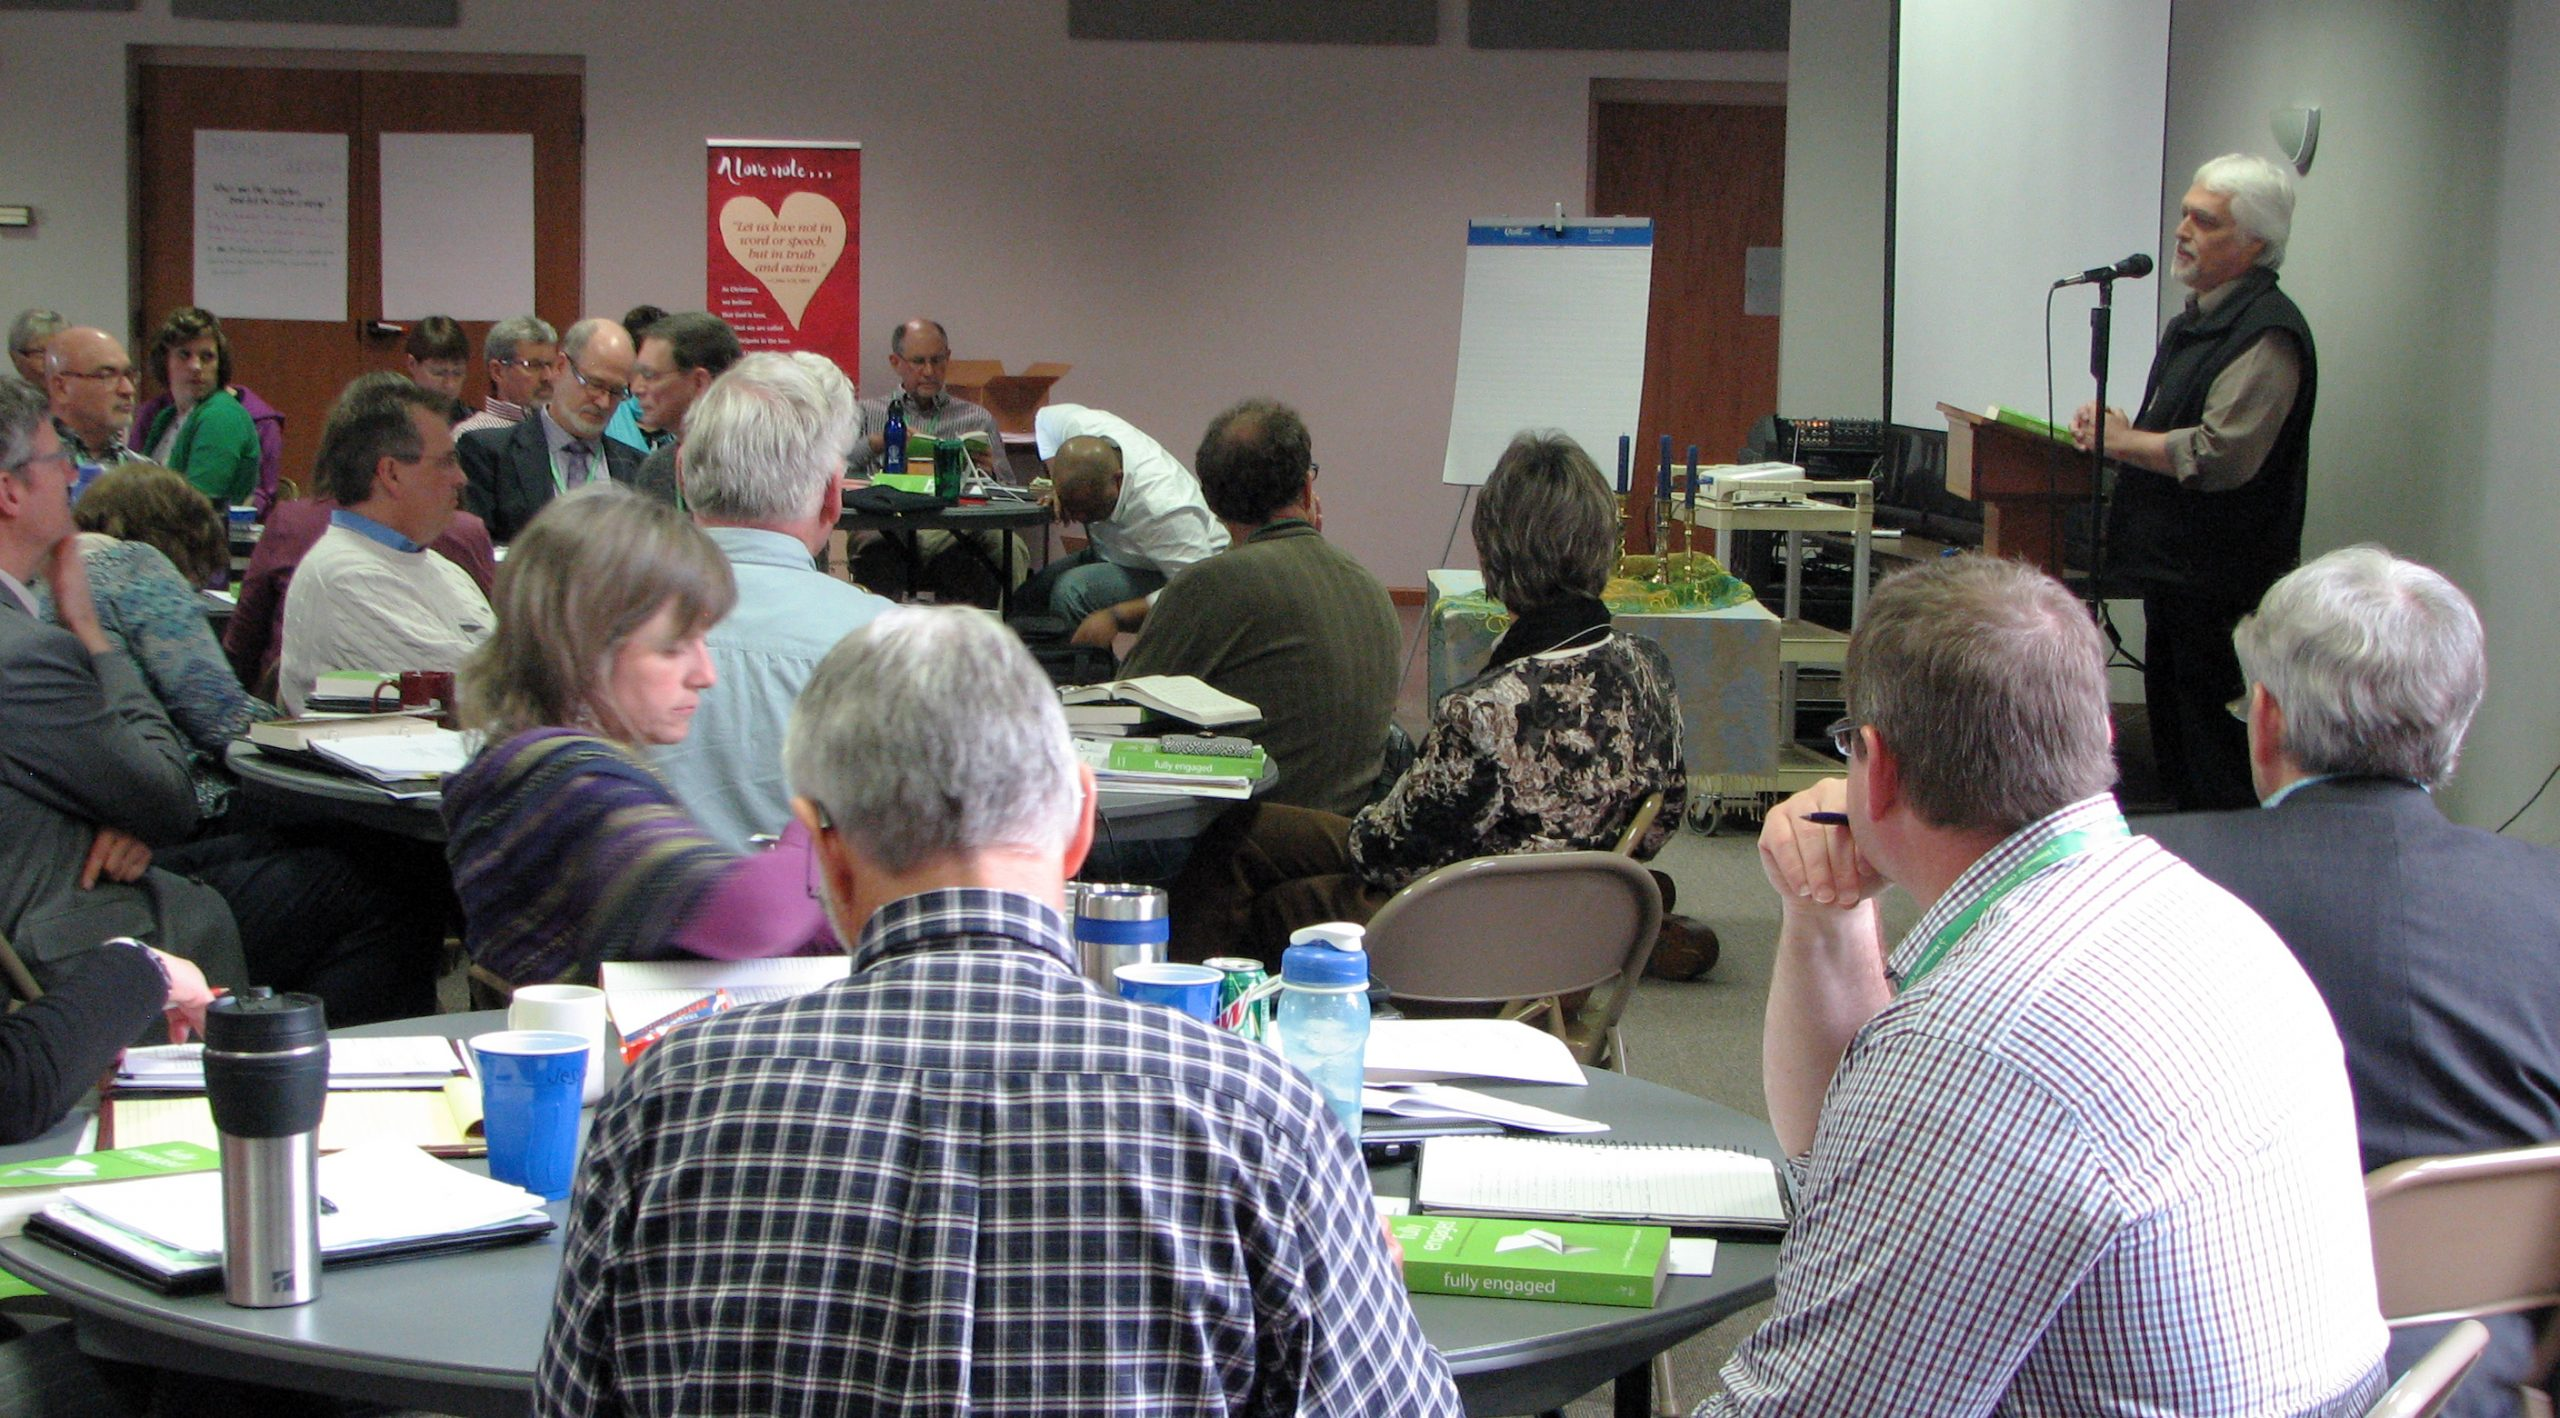 James Krabill, senior executive for Global Ministries for Mennonite Mission Network, presents an overview of Fully Engaged: Missional Church in an Anabaptist Voice, a new book he has co-edited with Stanley Green, executive director for Mission Network, at the March Constituency Leaders Council meeting at Silverwood Mennonite Church in Goshen, Indiana. (Photo by Annette Brill Bergstresser)